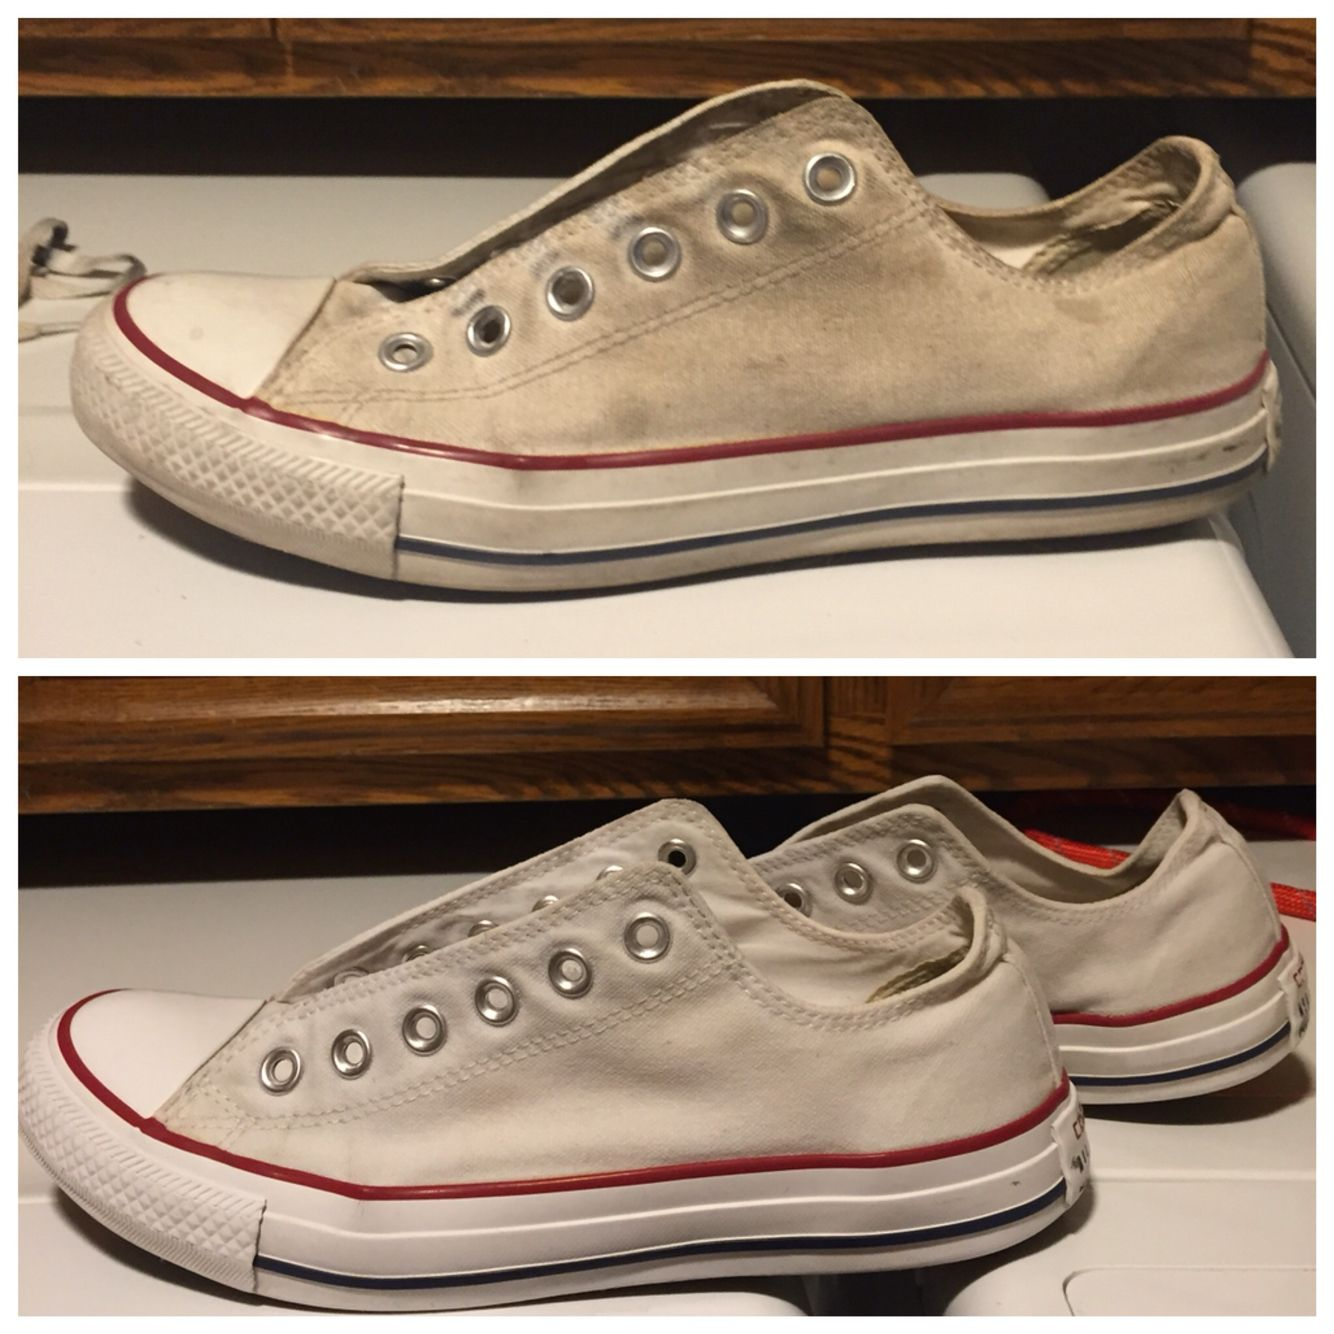 cleaning white converse: 1. mix 1 cup of baking soda and 1 & 1